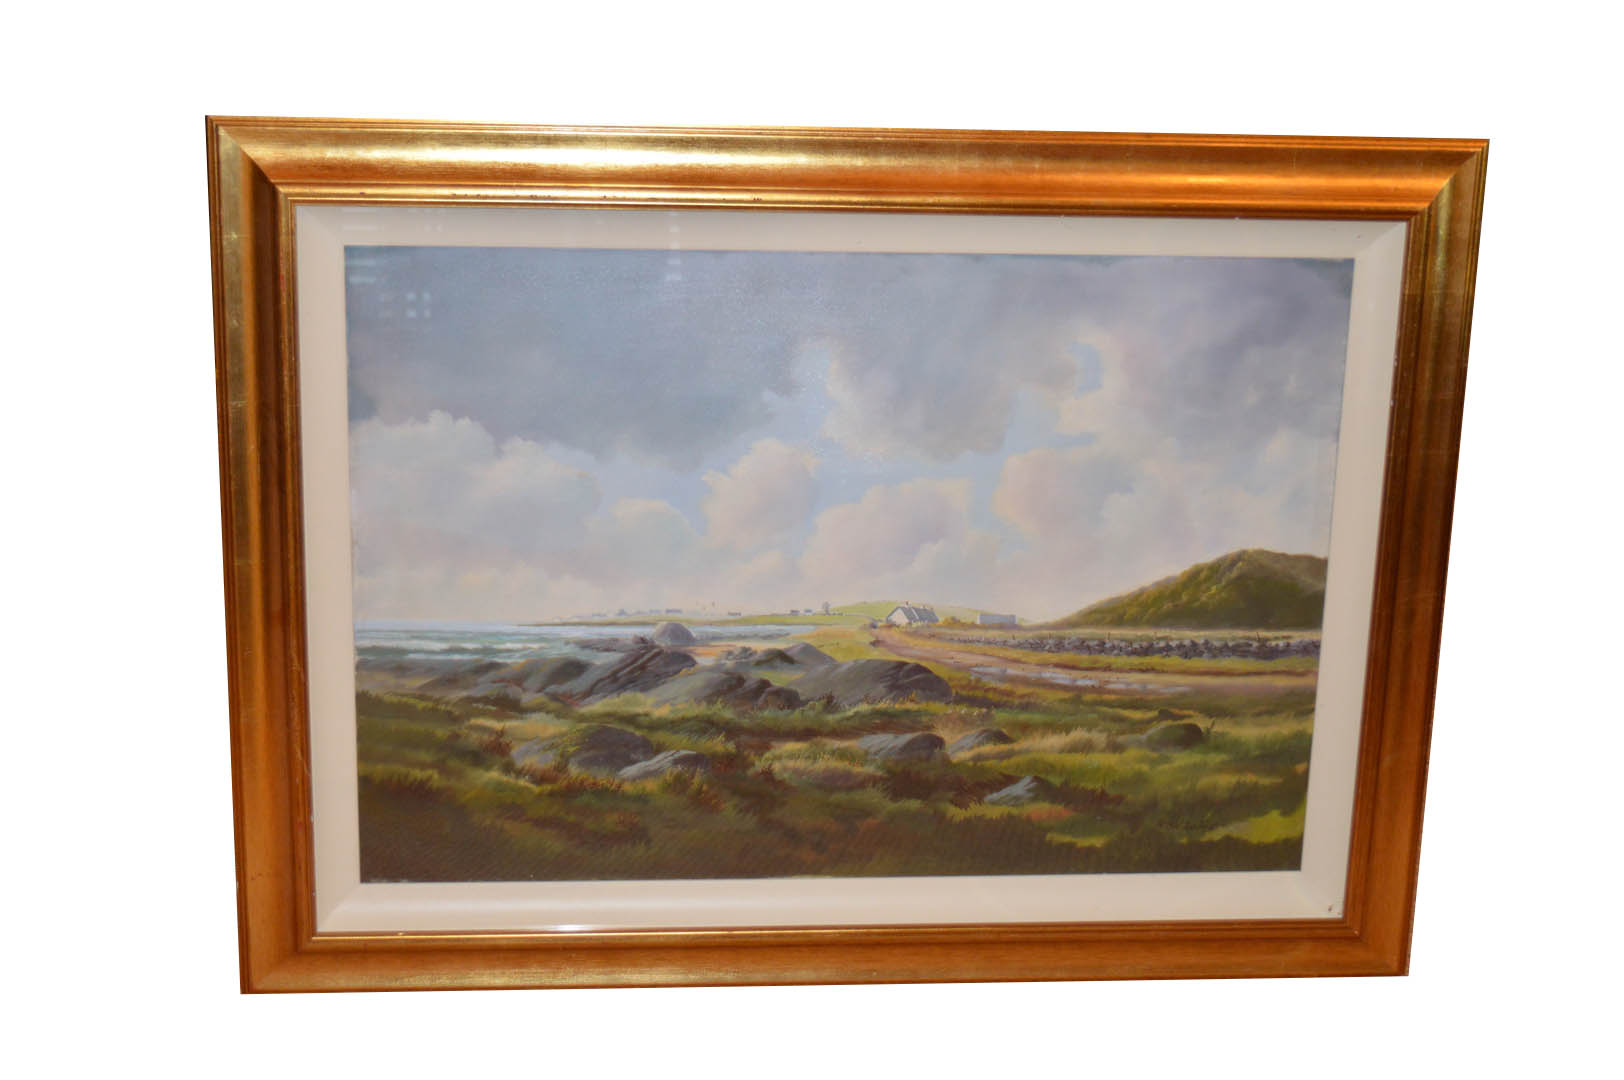 Lot 568 - An Oil Painting 'Land and Seascape' - R B Higgins